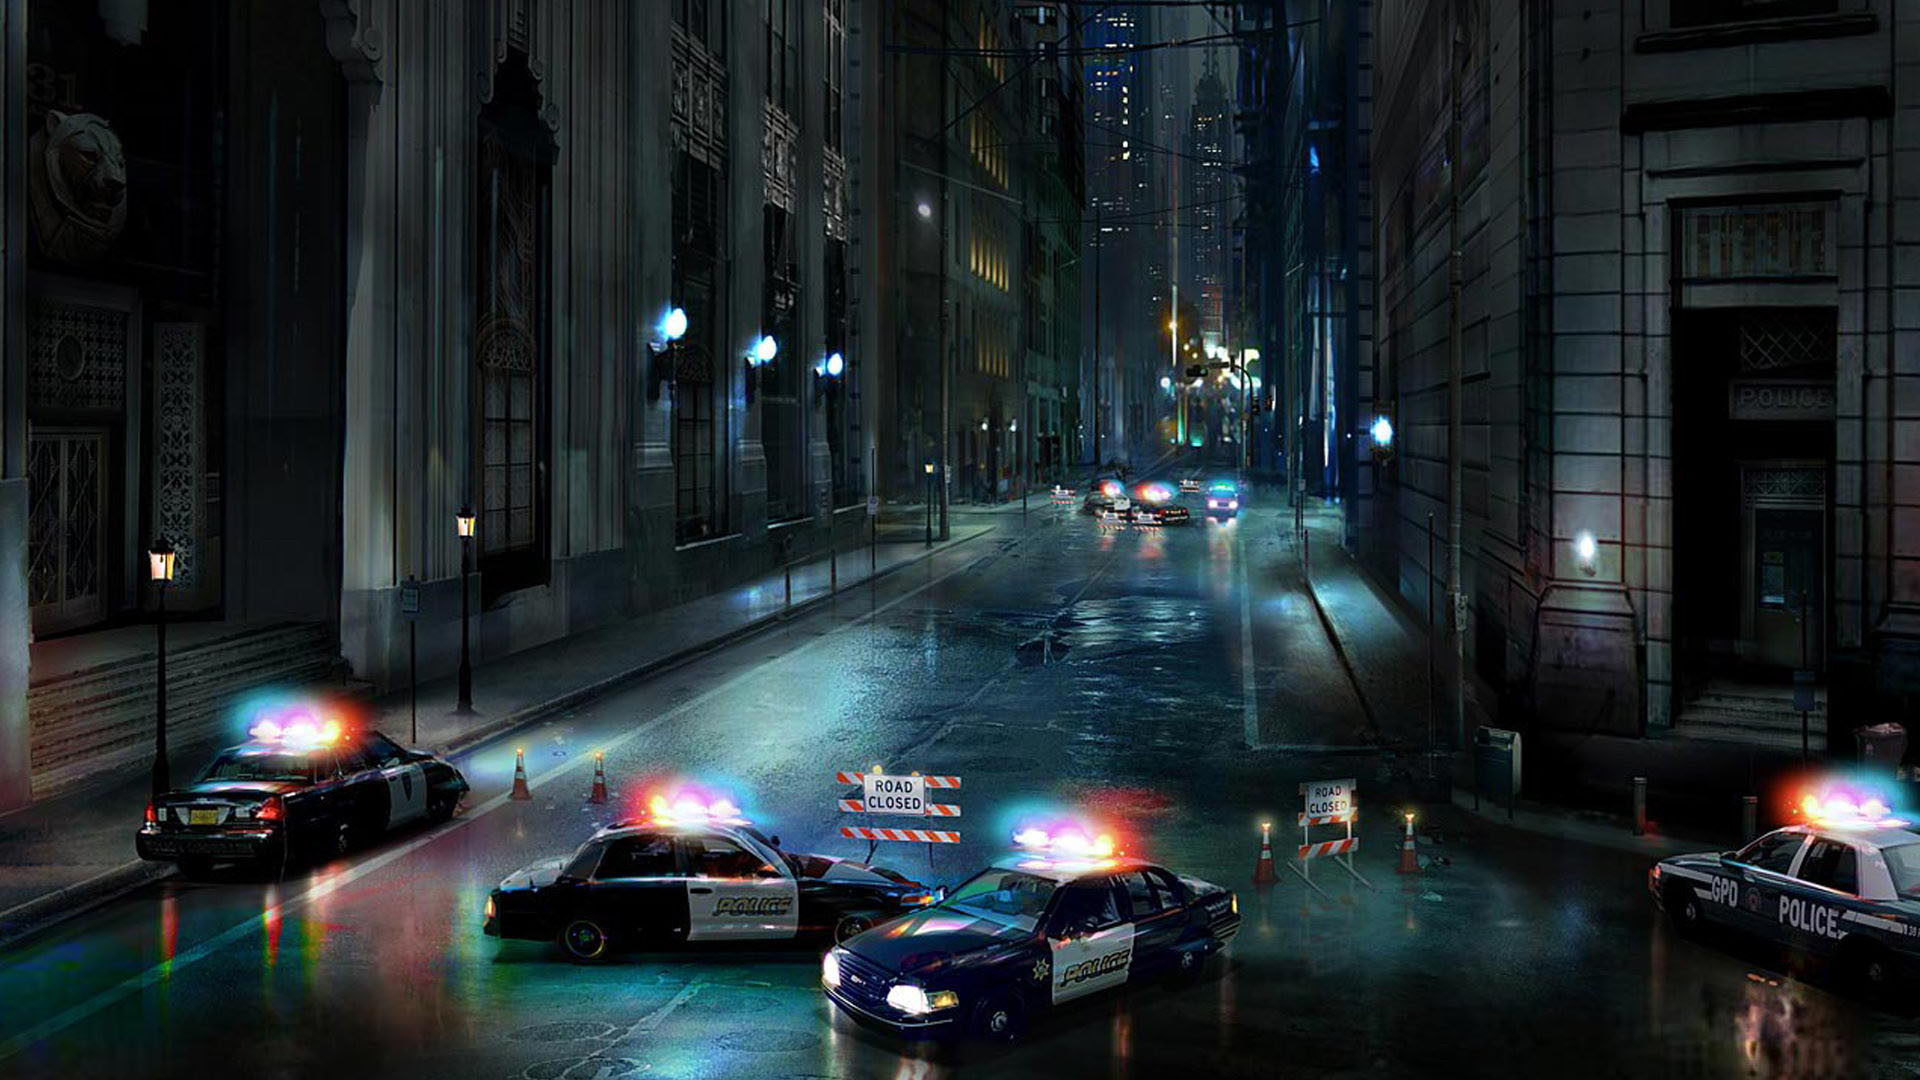 Gotham Scene, Road Closed by the Police wallpaper